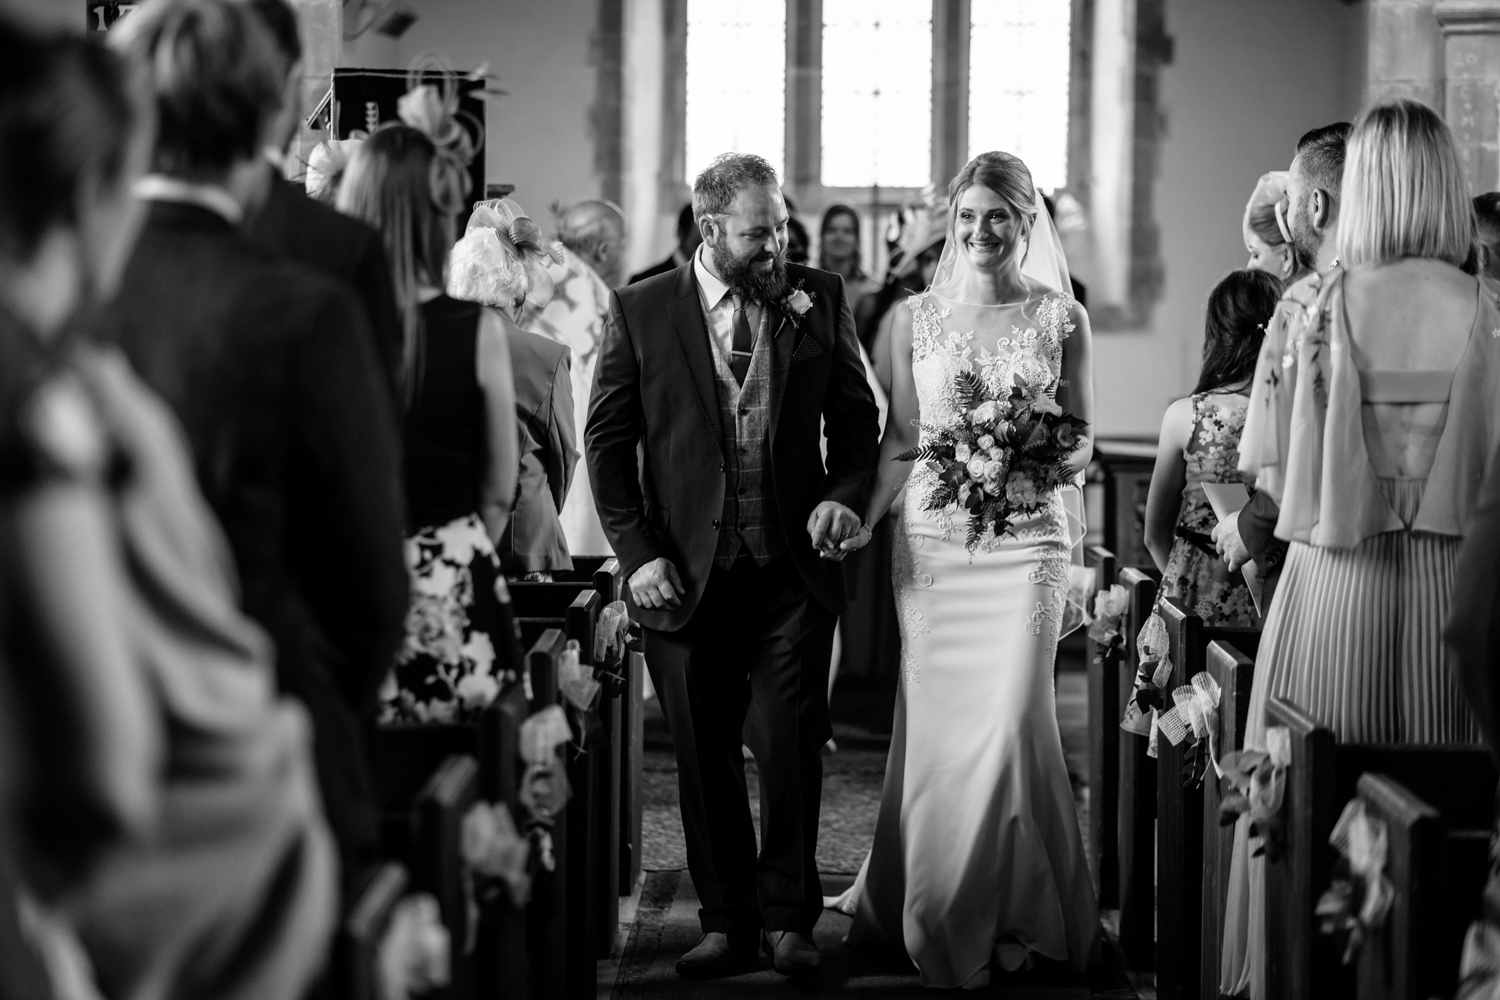 Bride and groom walking out of church up the aisle